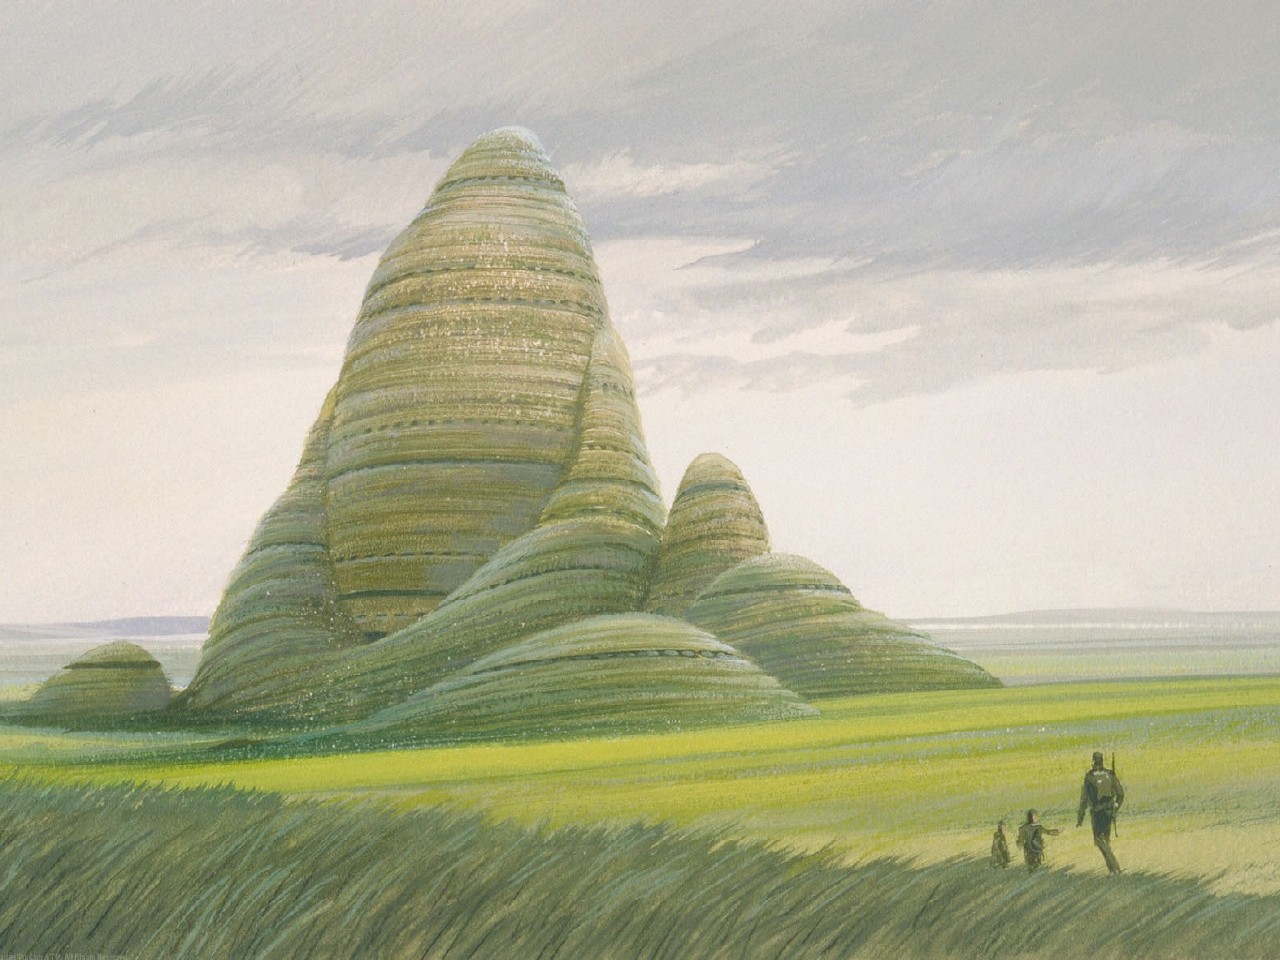 Early Pre-Production Art for Grassy Planet in ROTJ